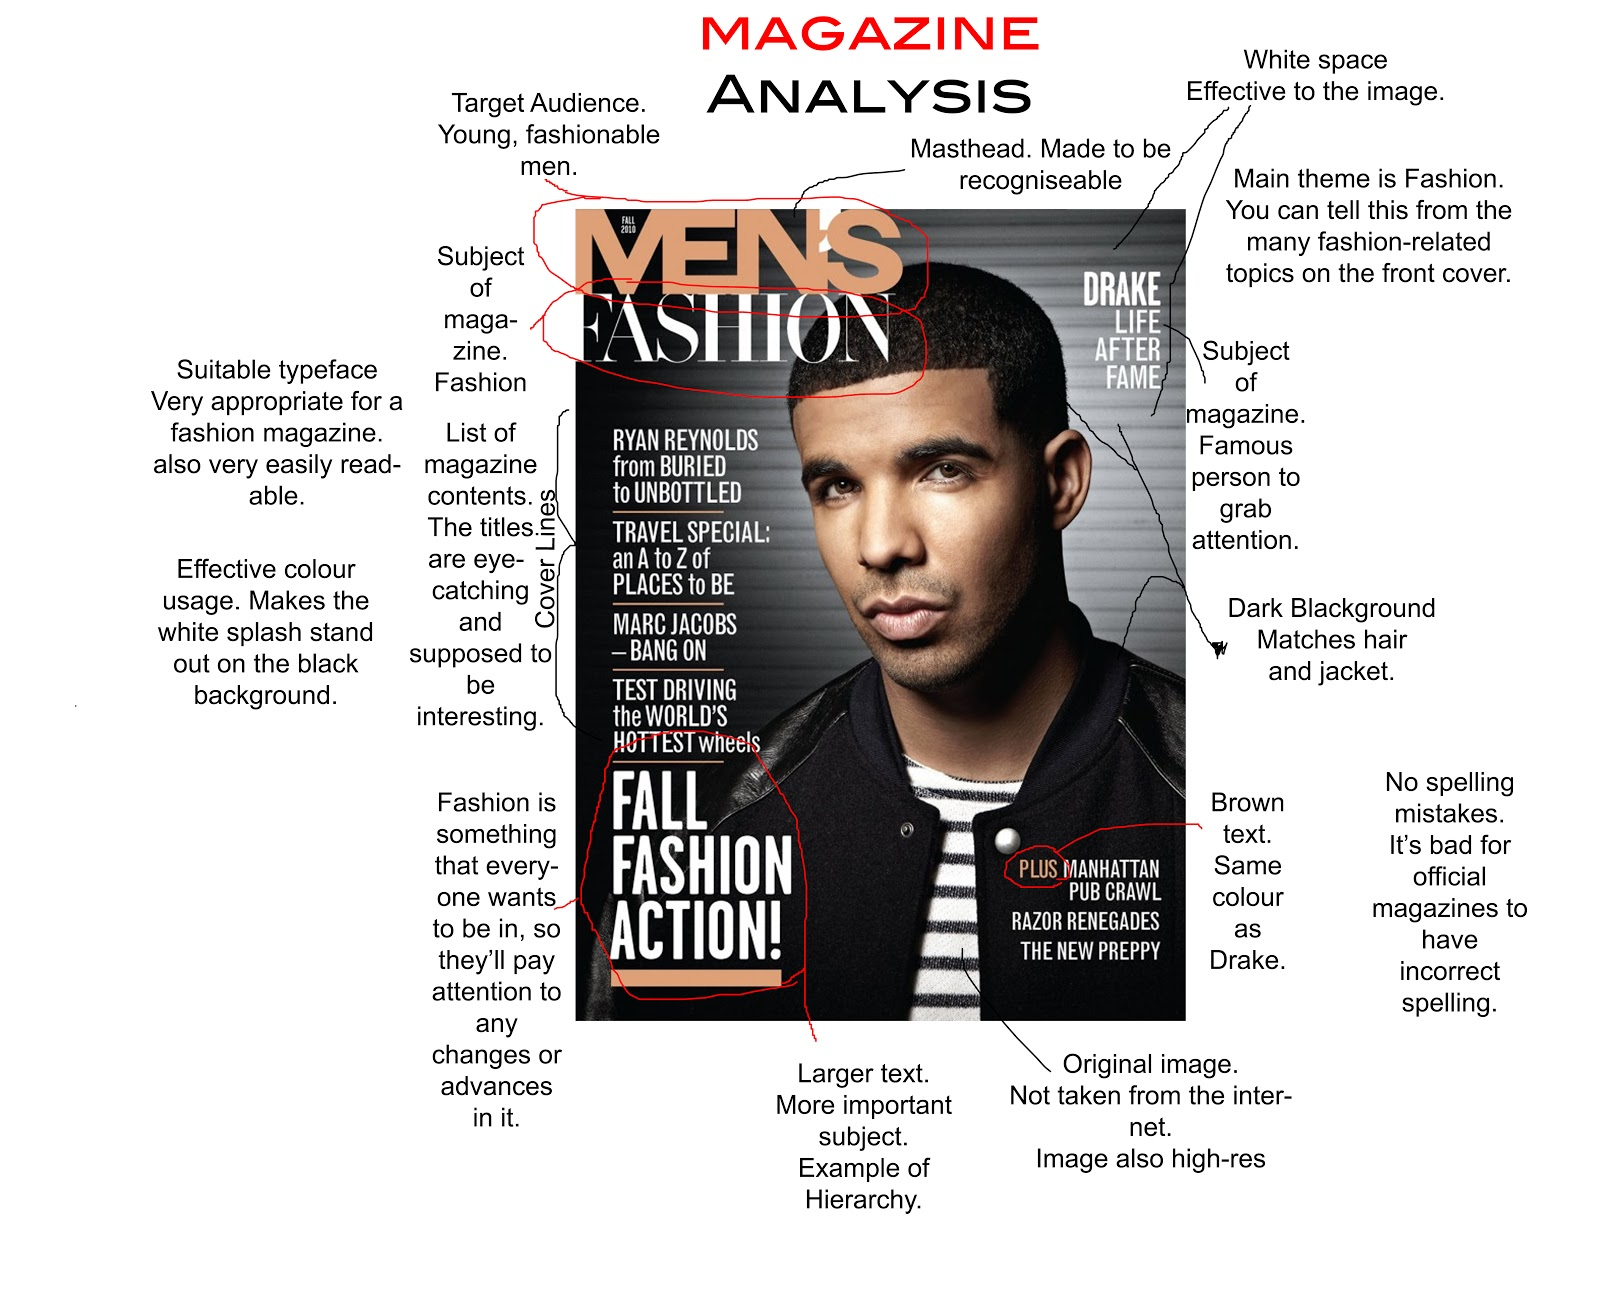 The Visual Communication of Magazine Covers: A Comparative Analysis